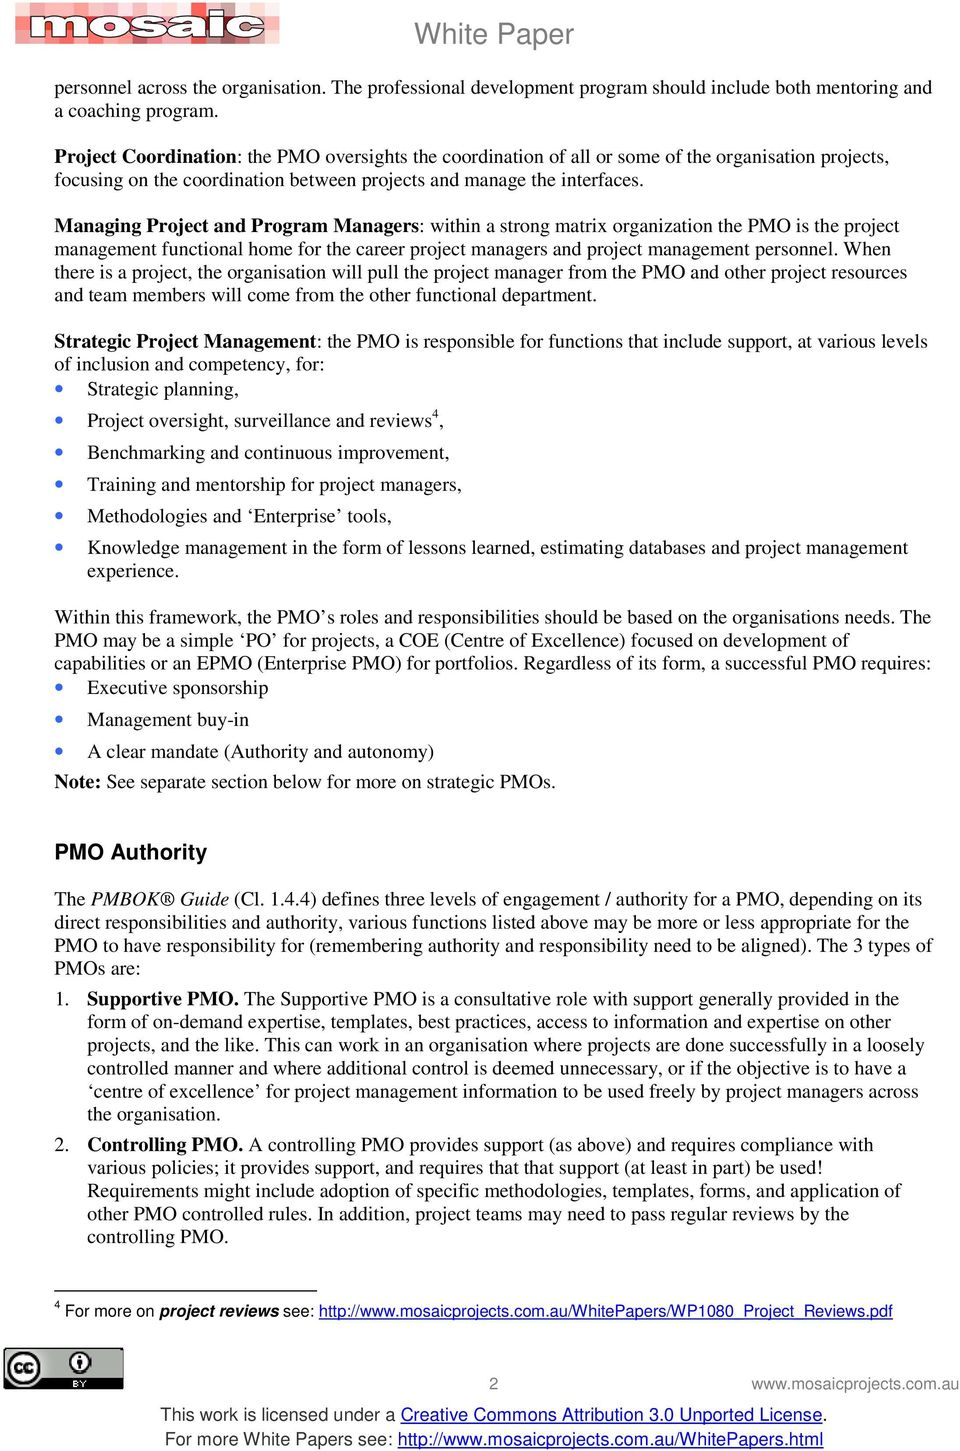 PMOs  White Paper For more papers on PMOs see: - PDF